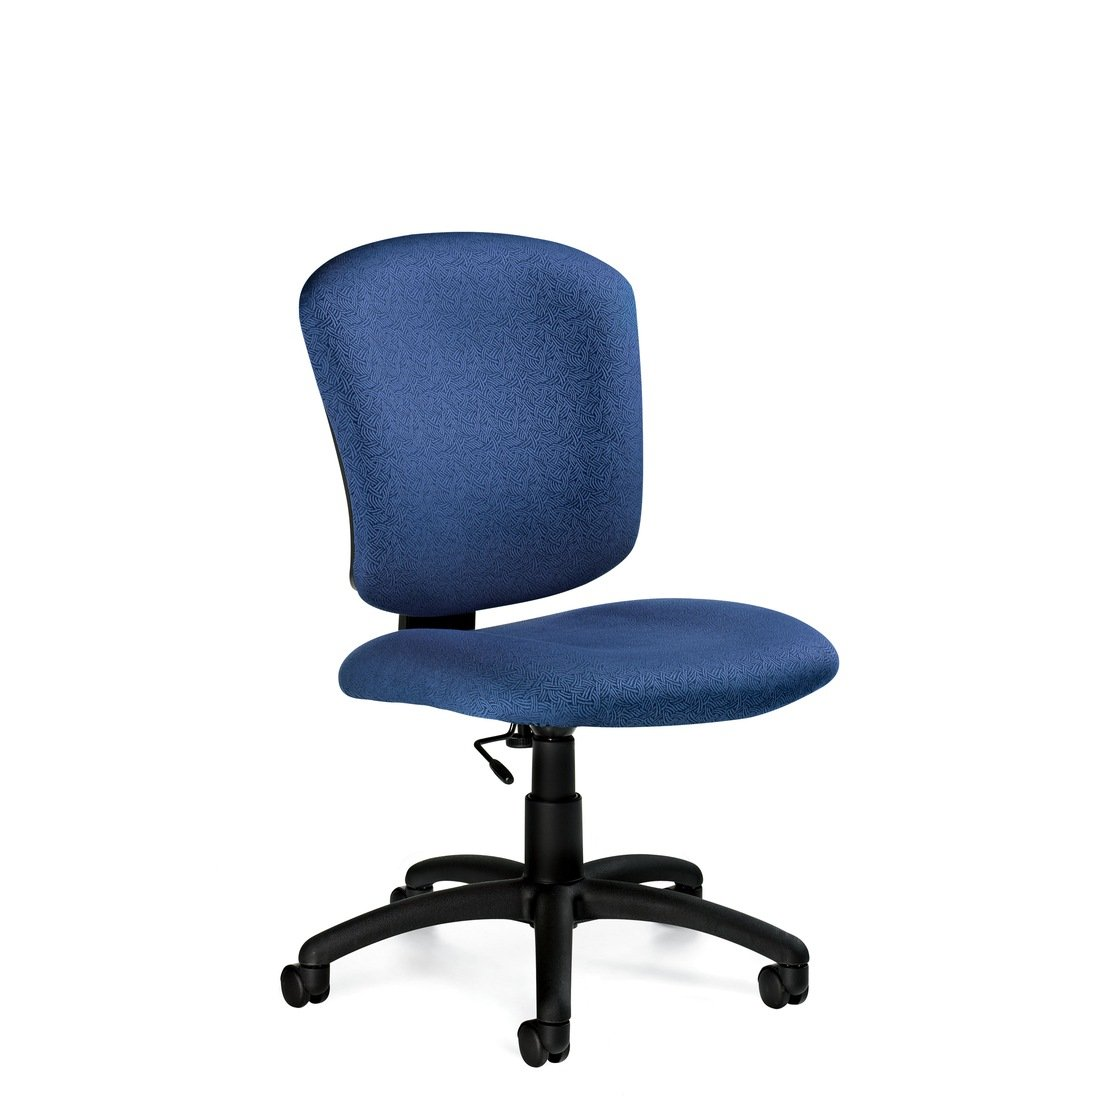 Supra X back medium back armless task chair, model 5337-6. This chair has been placed on a white background.